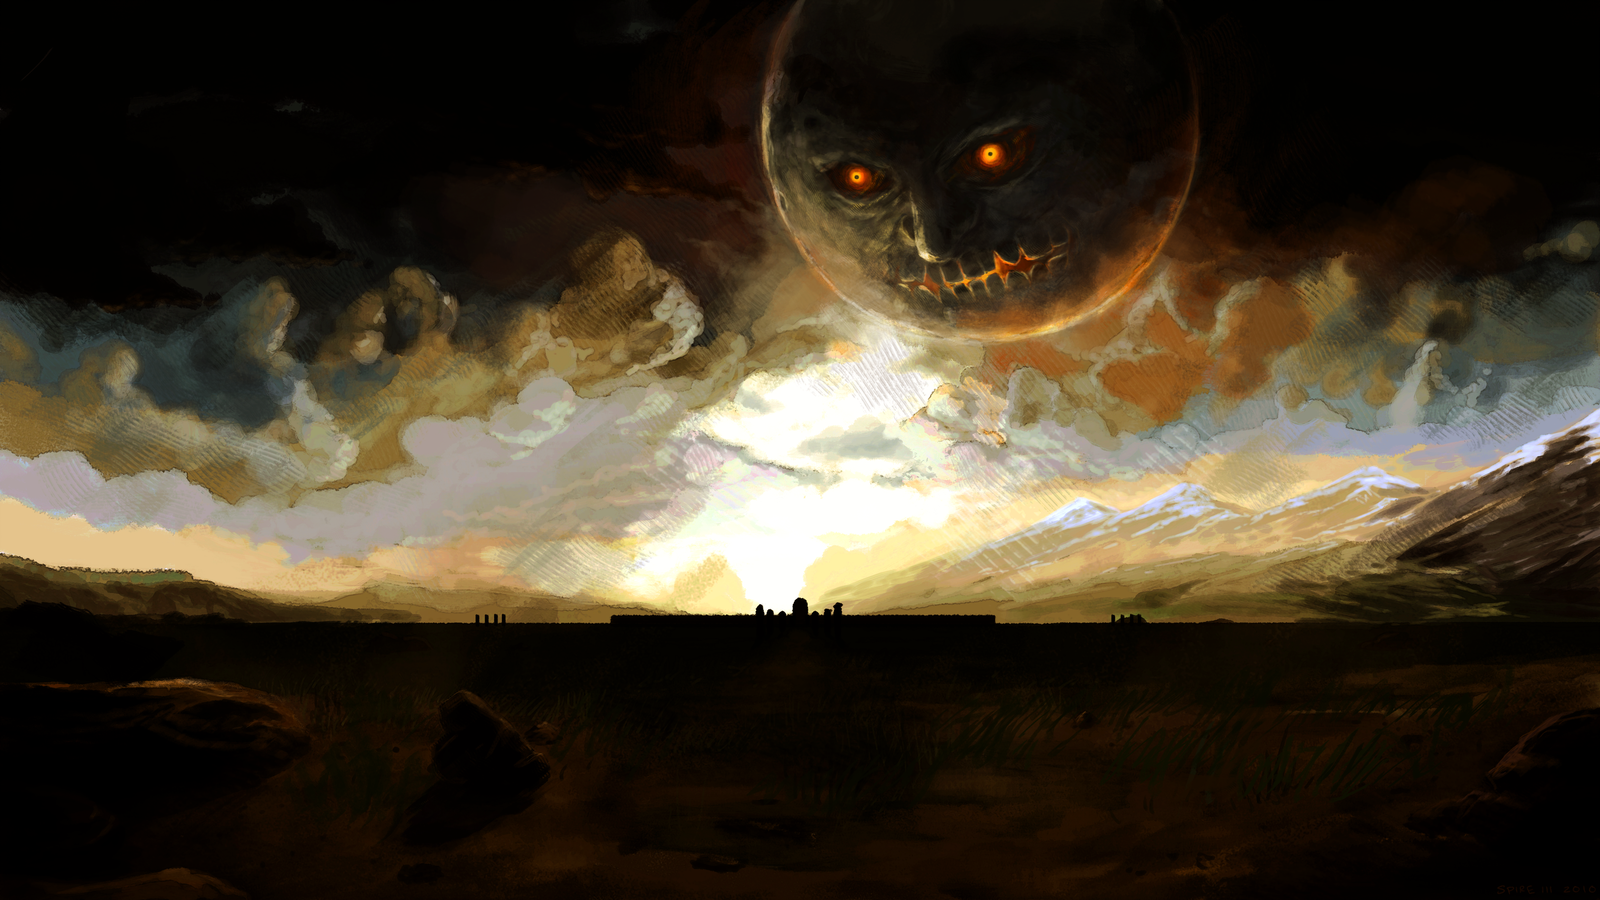 A New Illustrated Telling Of Majora's Mask's Enigmatic Story